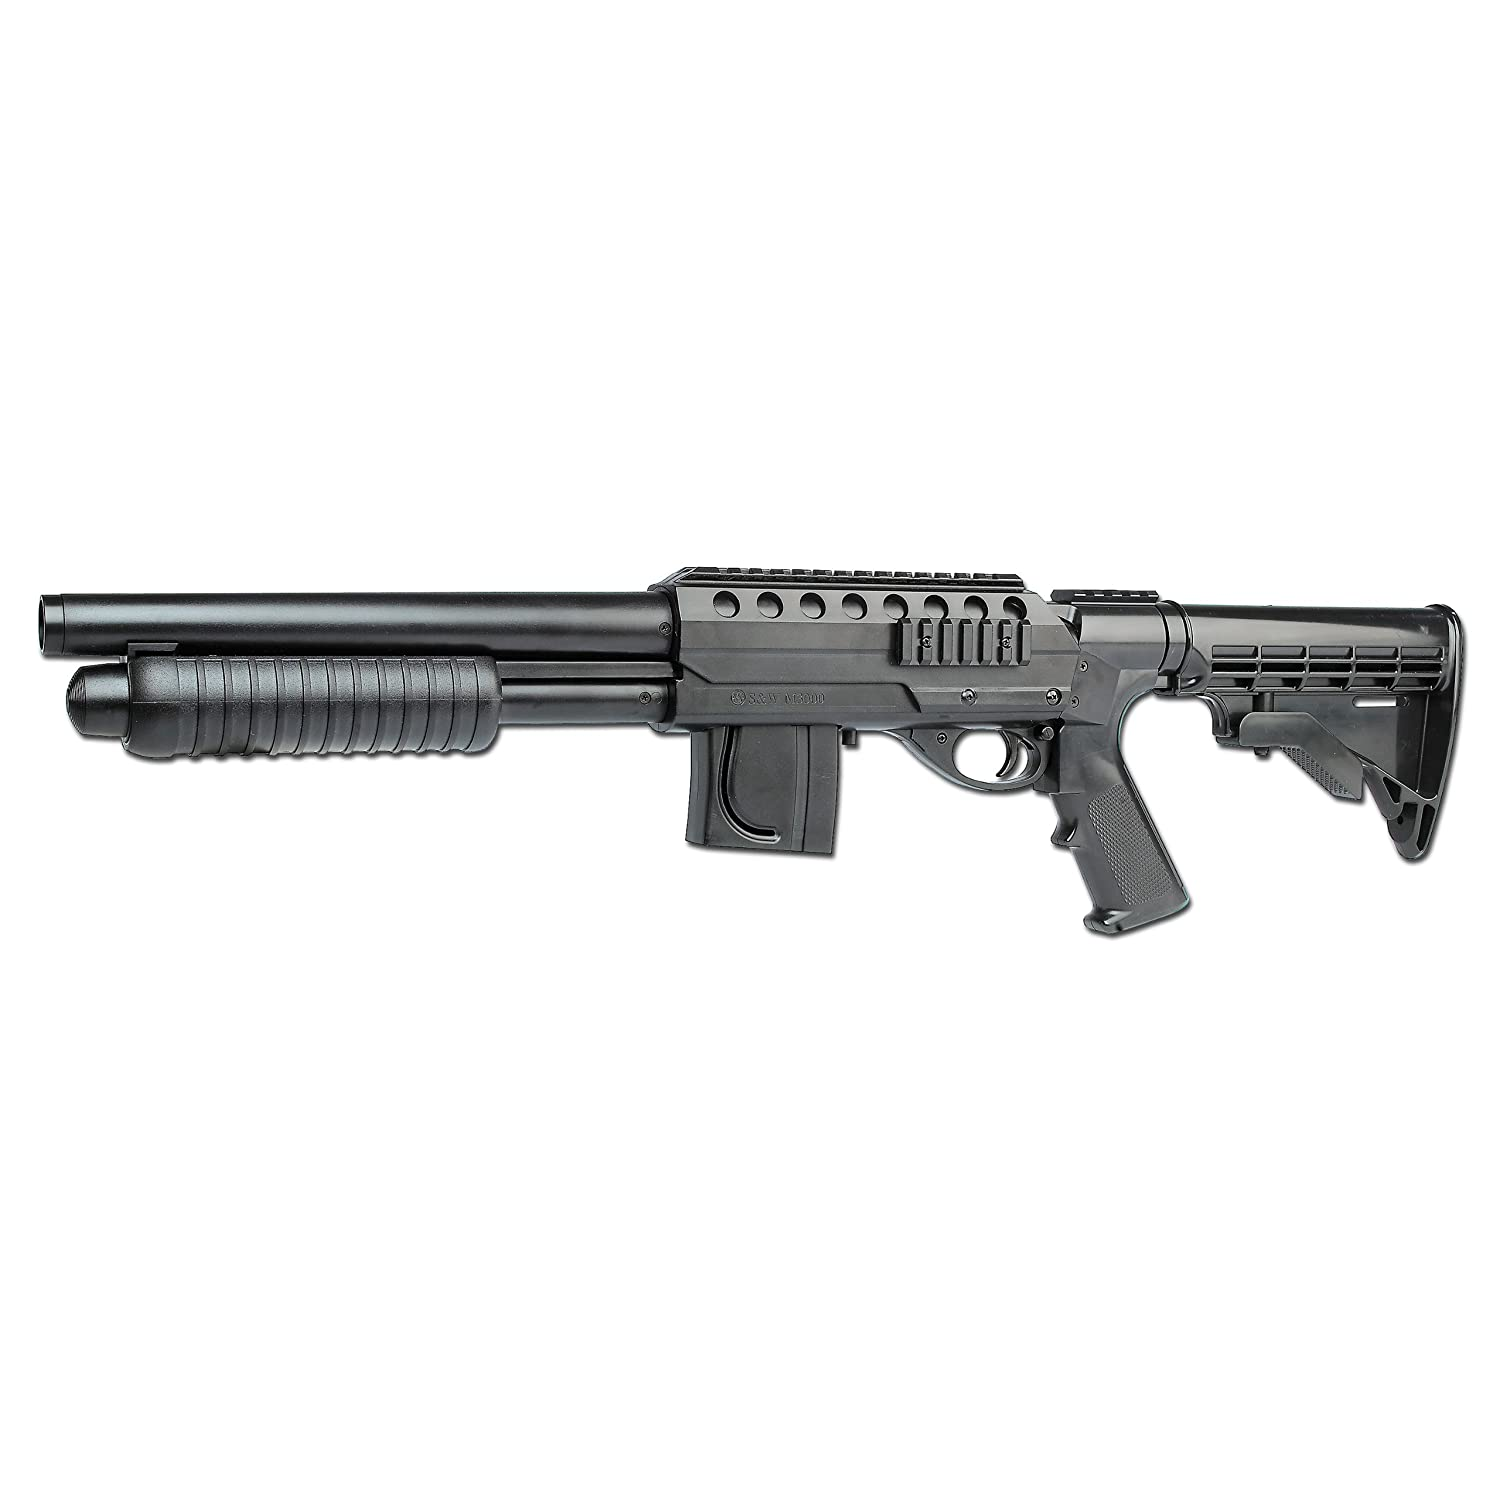 Smith & Wesson M3000 L.E. Stock Muelle Airsoft cybergun